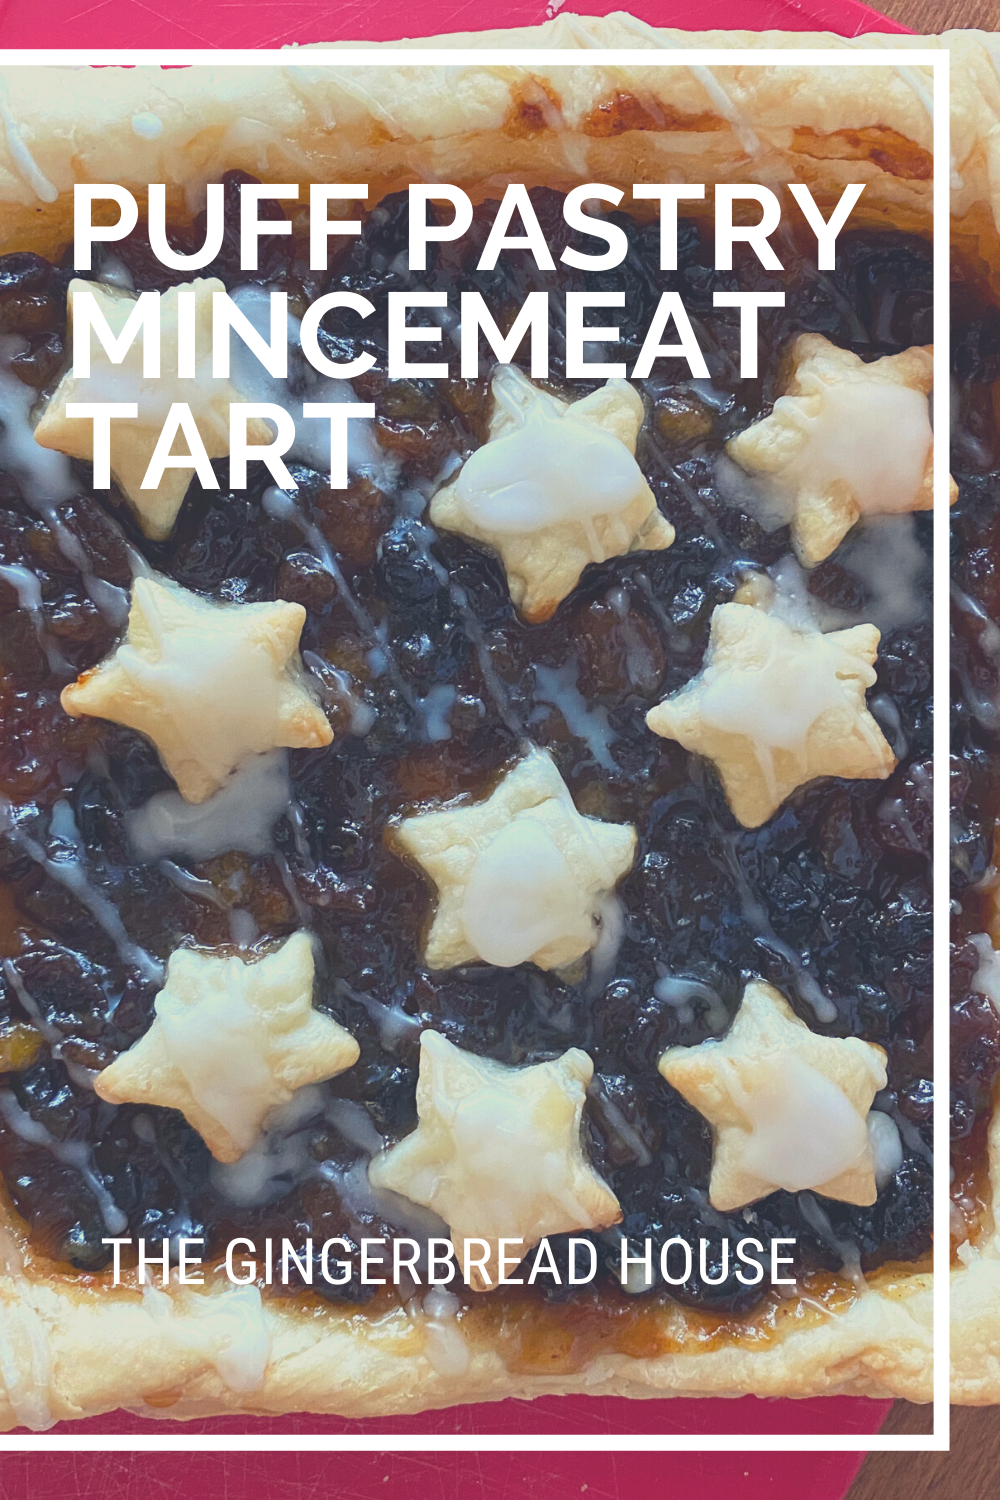 Puff pastry mincemeat tart recipe